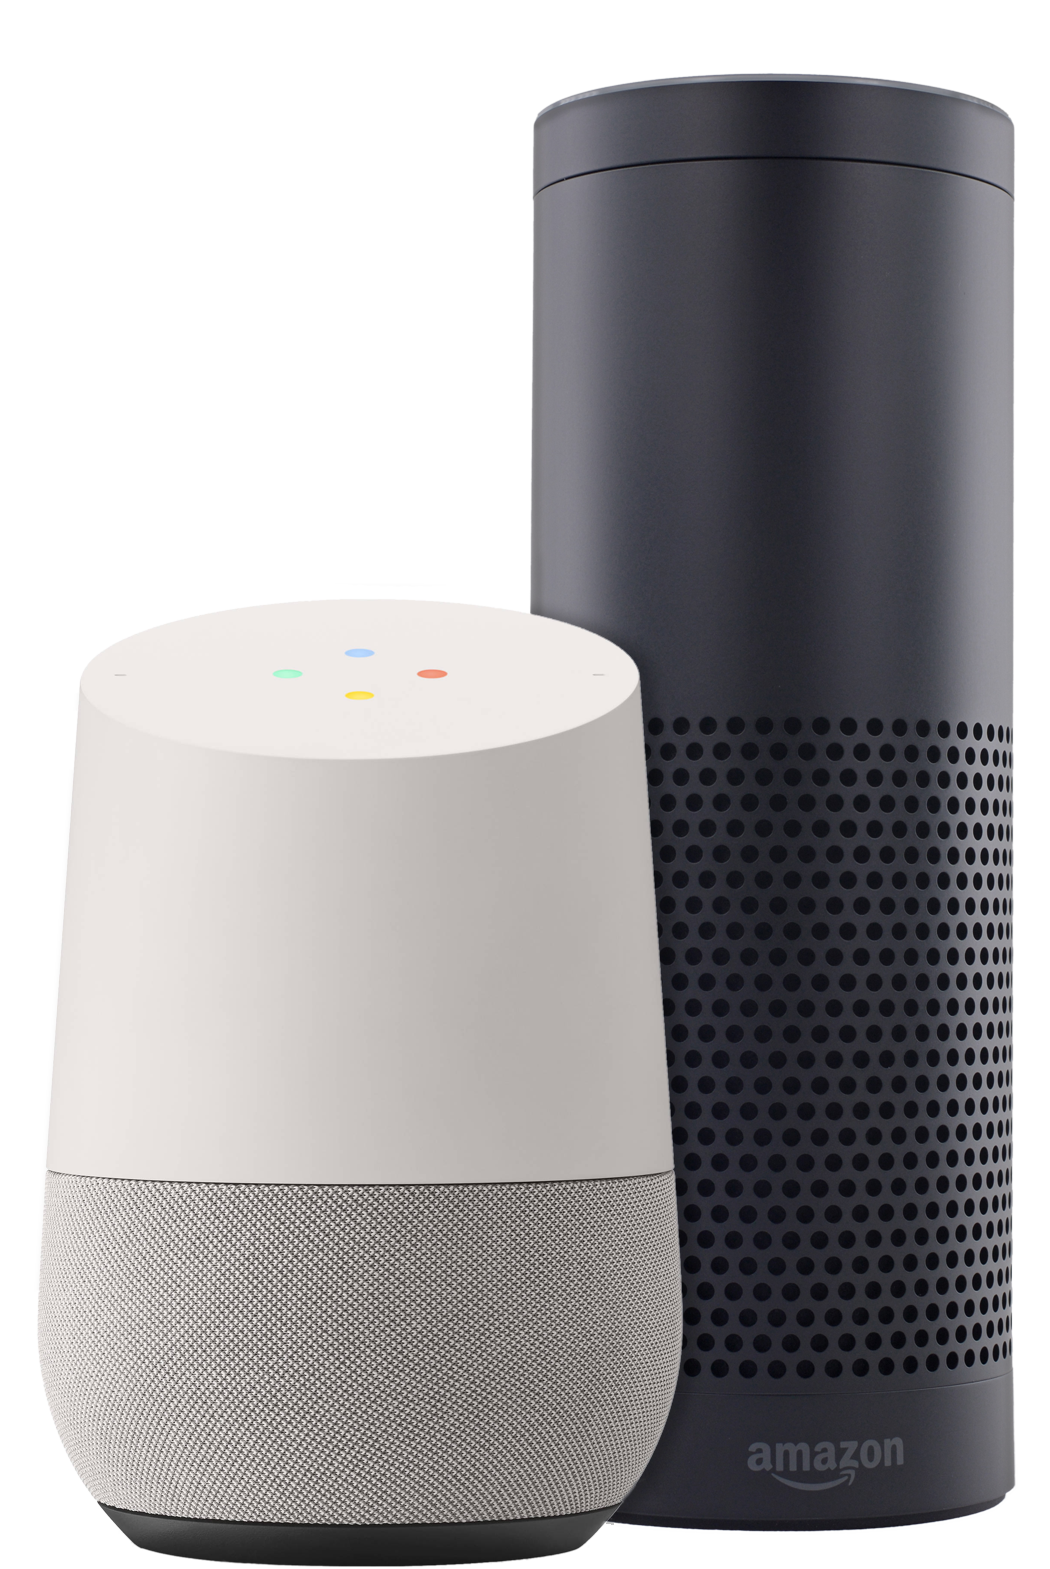 Google Home and Amazon Echo devices